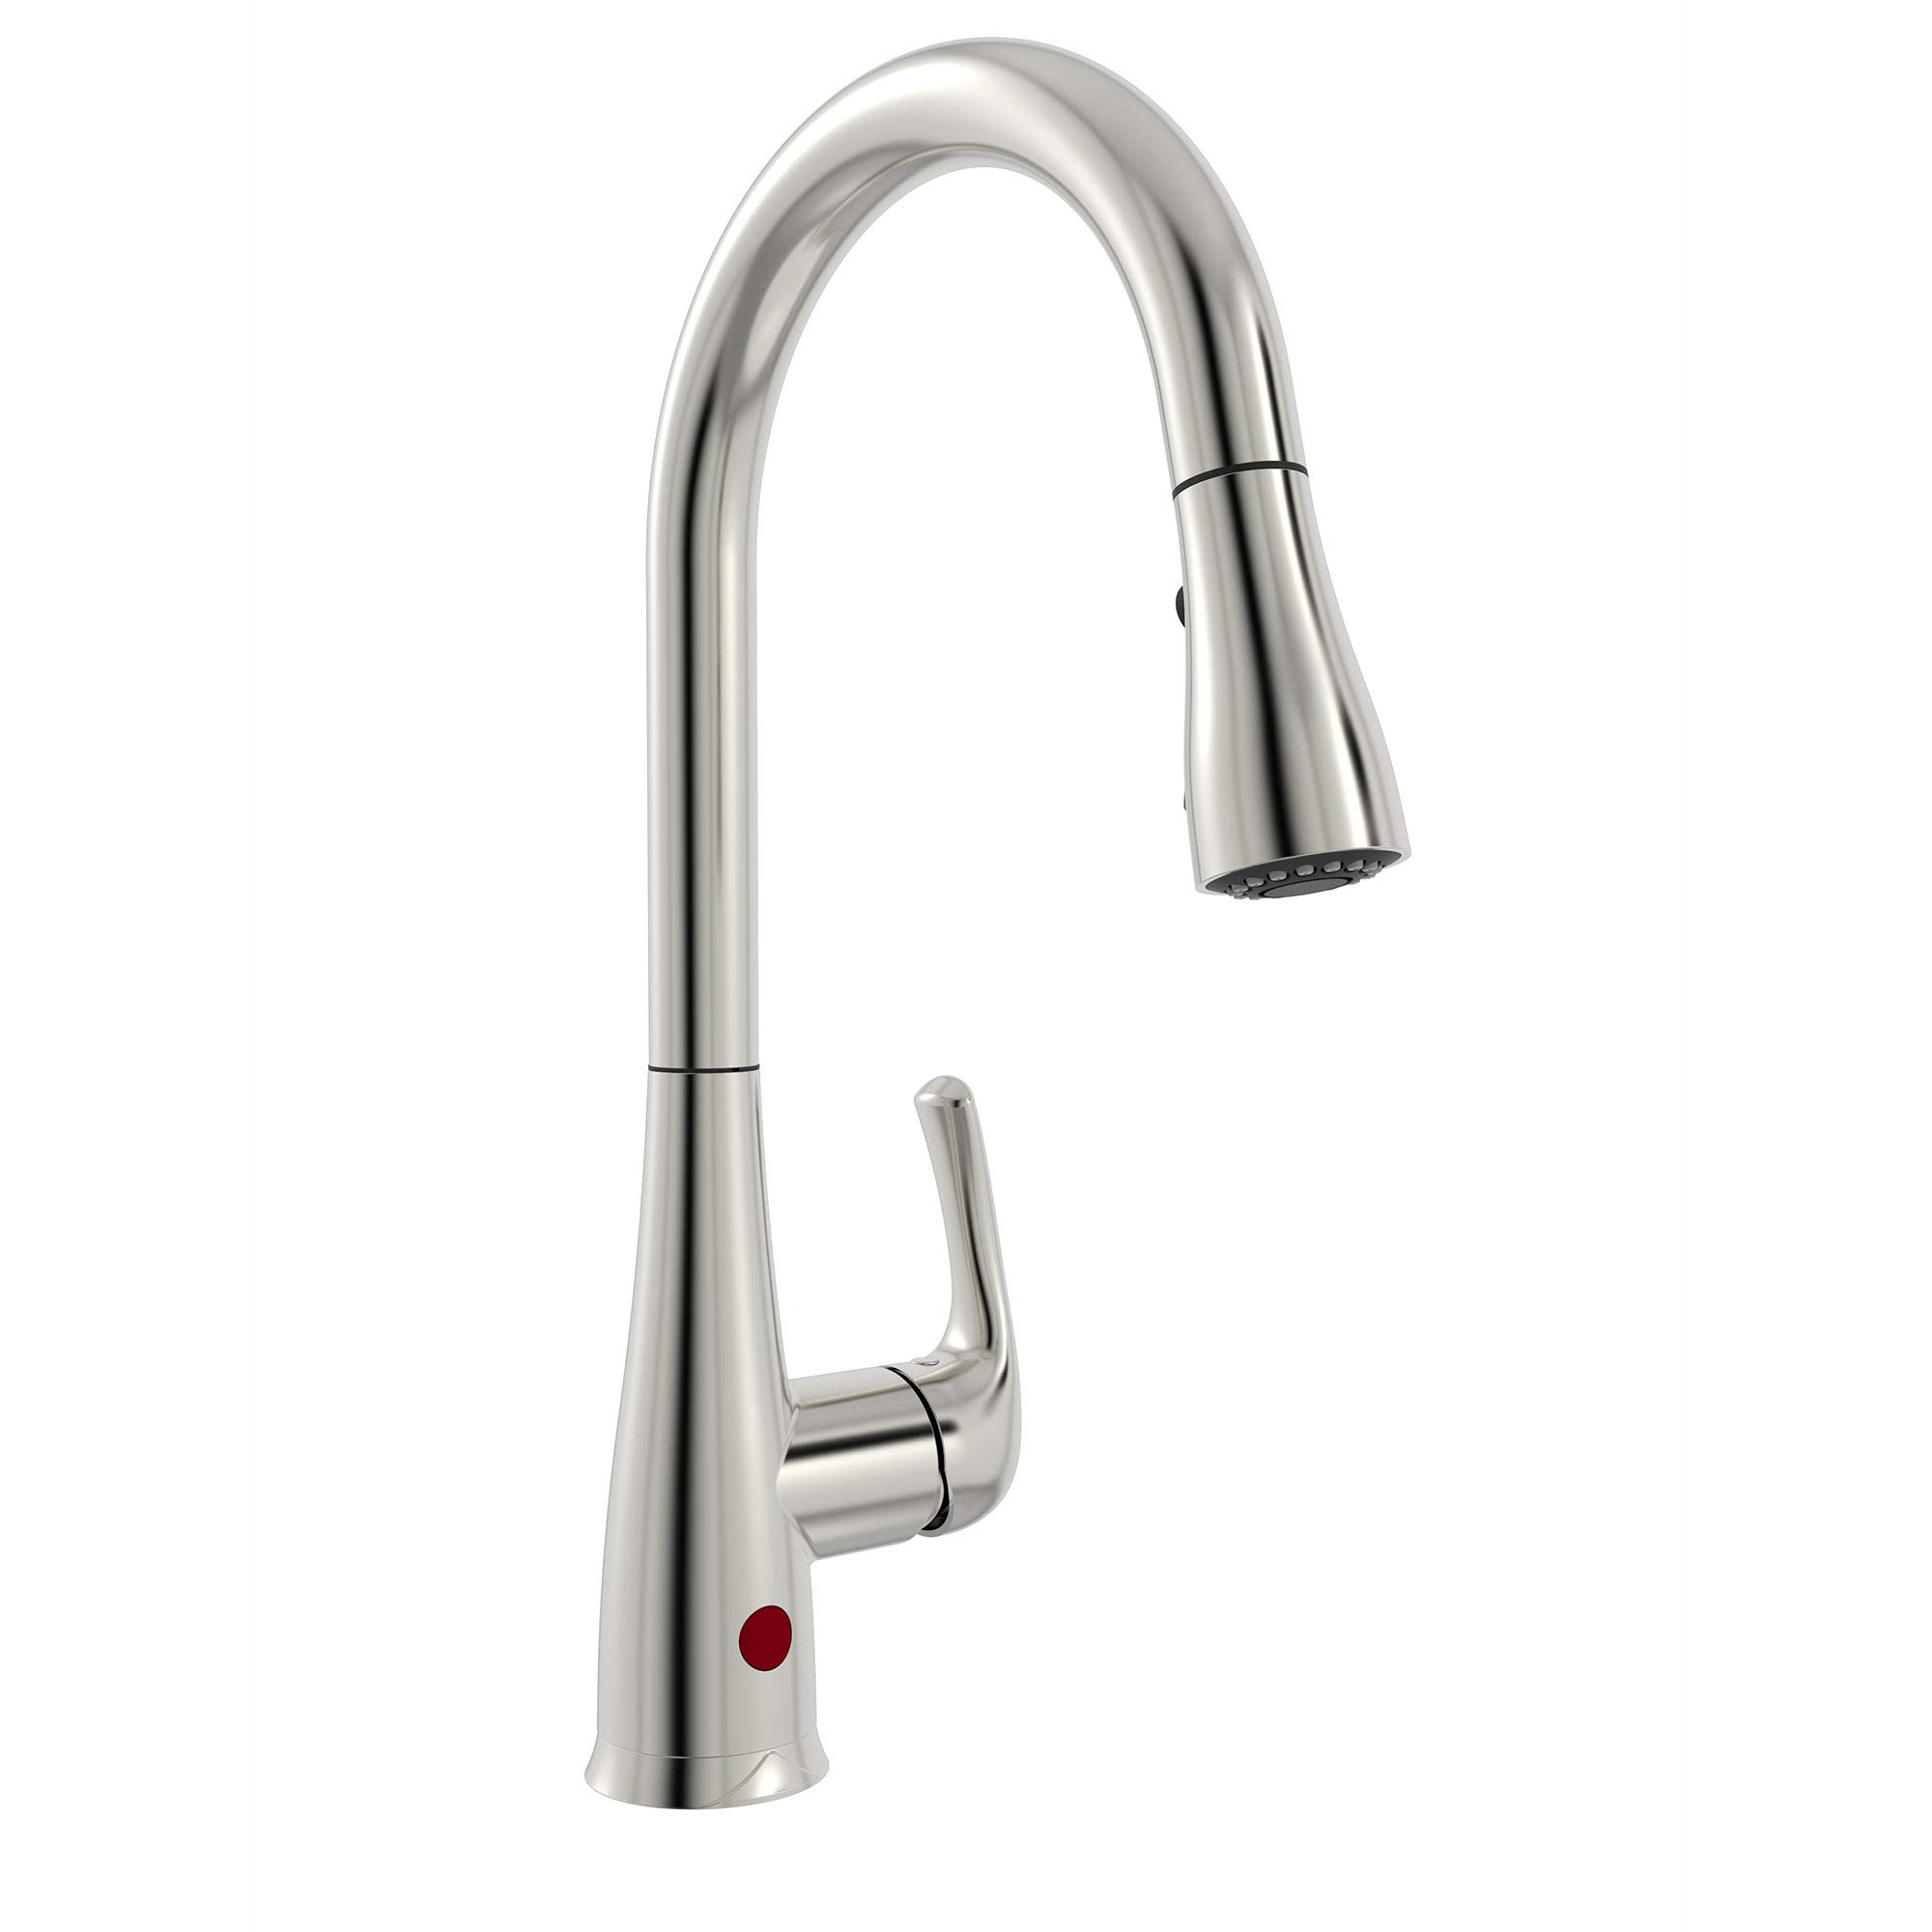 Belanger NEX76CBN 1-Handle Movement Sensor Kitchen Sink Faucet with Pull-Down Spout, Brushed Nickel Finish by Plumb Pak